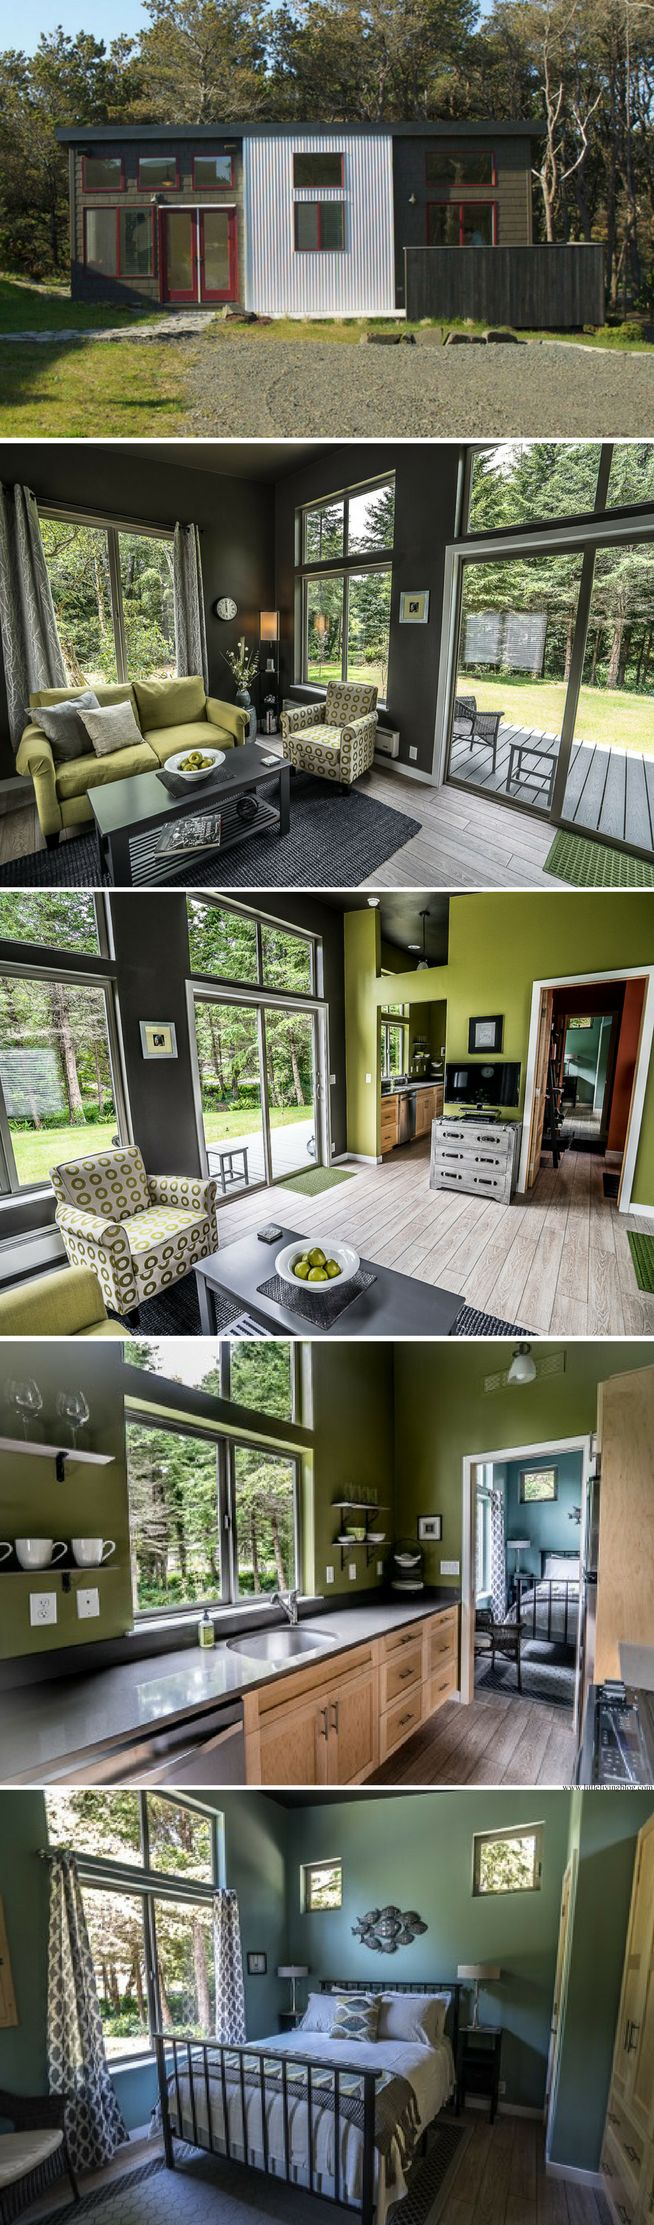 interior design of bungalow houses%0A The Northwest prefab home from IdeaBox sq ft   Ugly outside  but the inside  has nice open space and amazing natural light